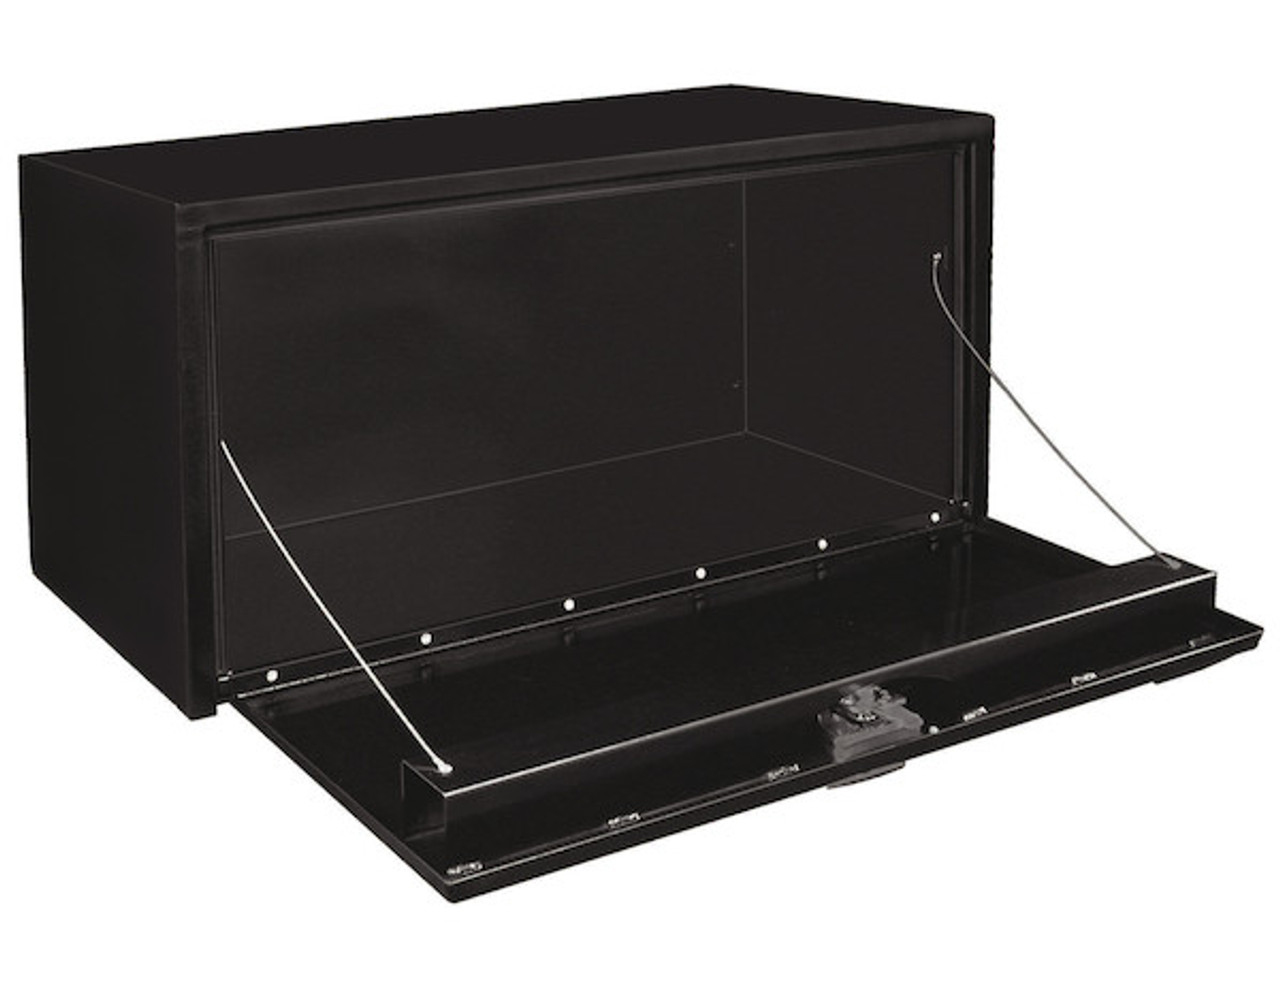 "1702303 BUYERS PRODUCTS BLACK STEEL UNDERBODY TRUCK TOOLBOX WITH T-LATCH 18""HX18""DX30""W"